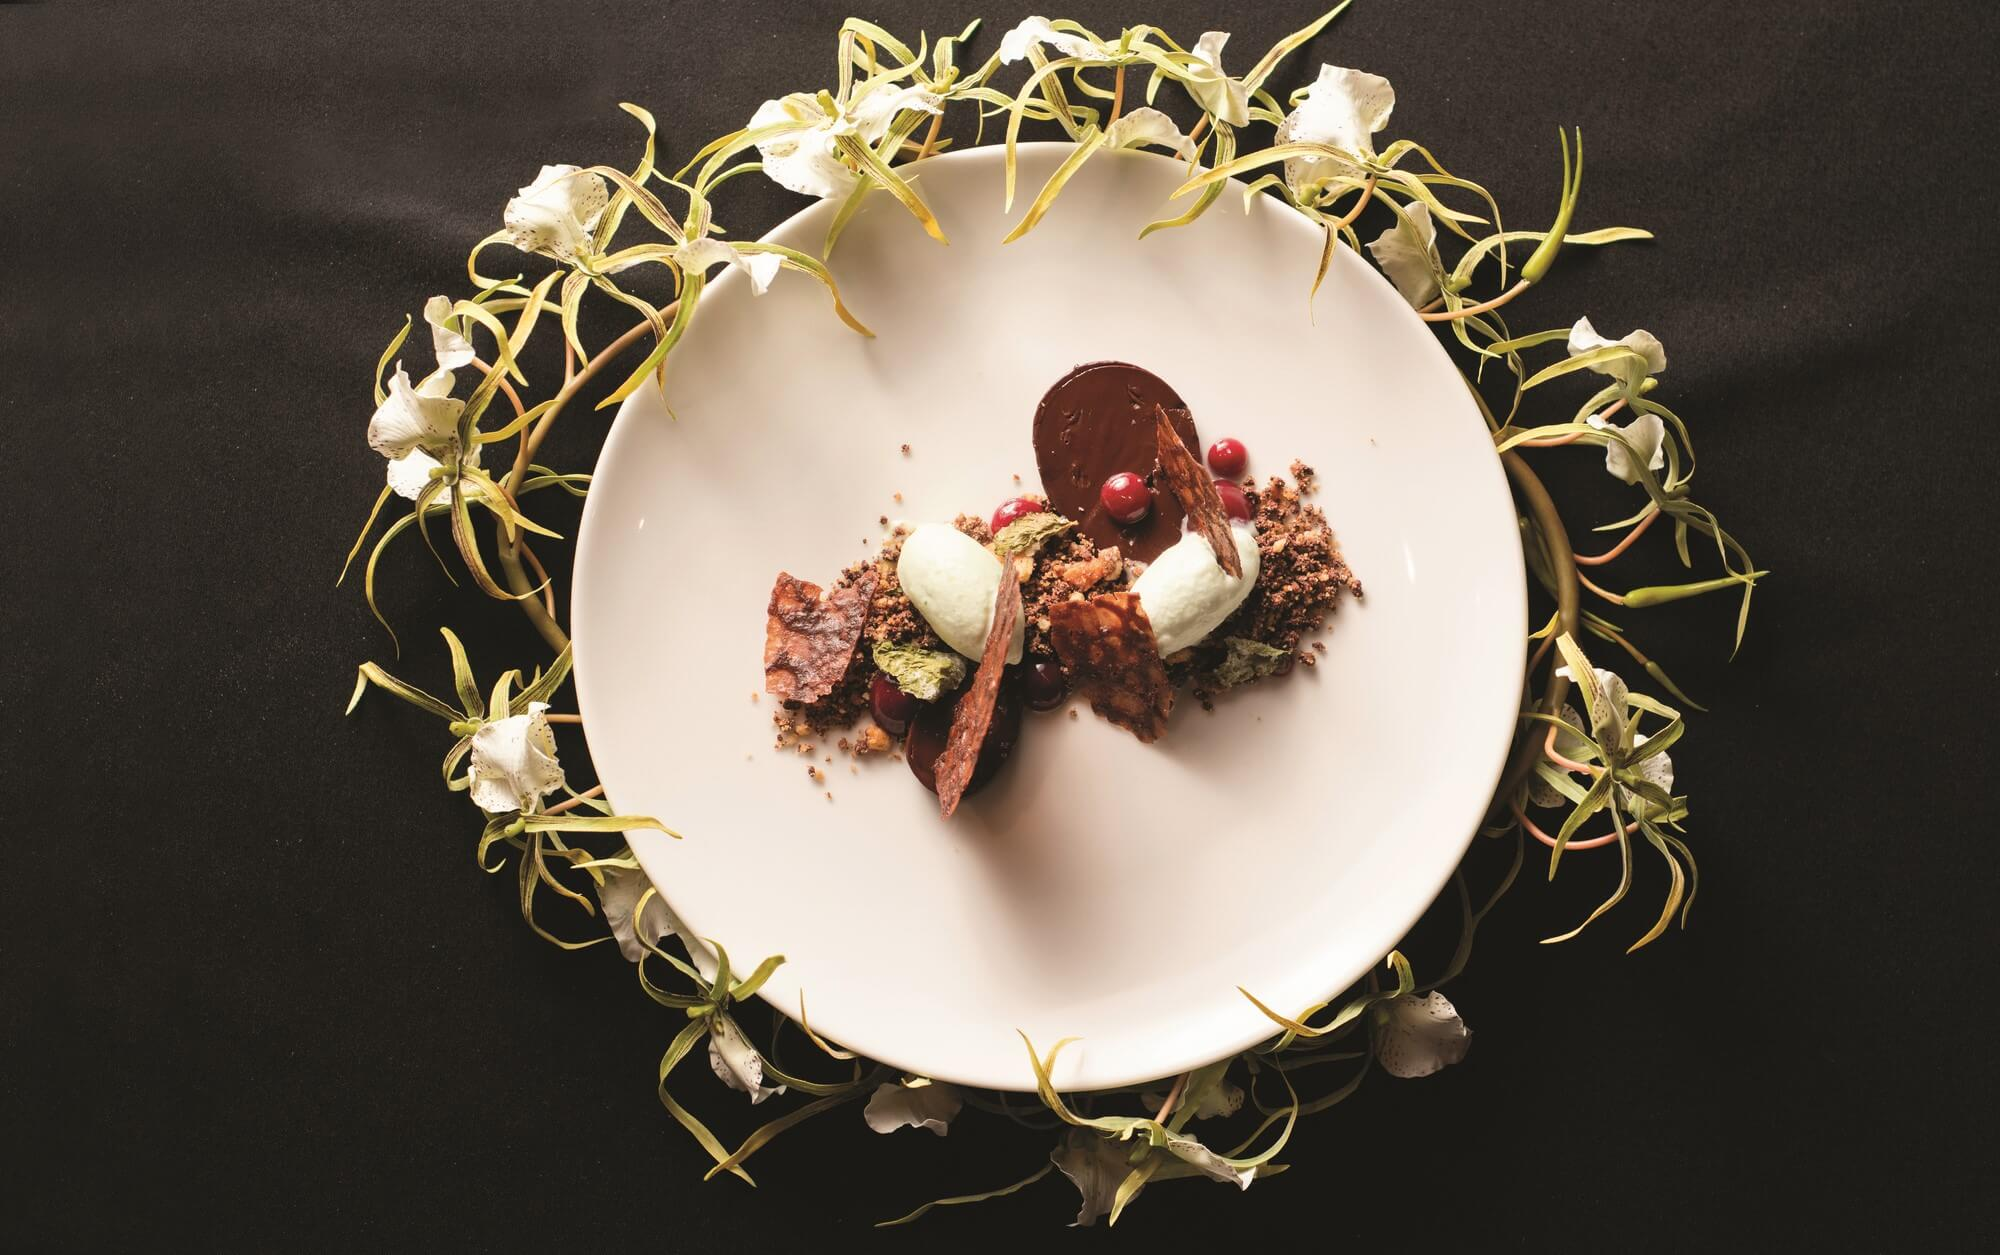 Chocolate and mint in all different forms, temperatures and flavours